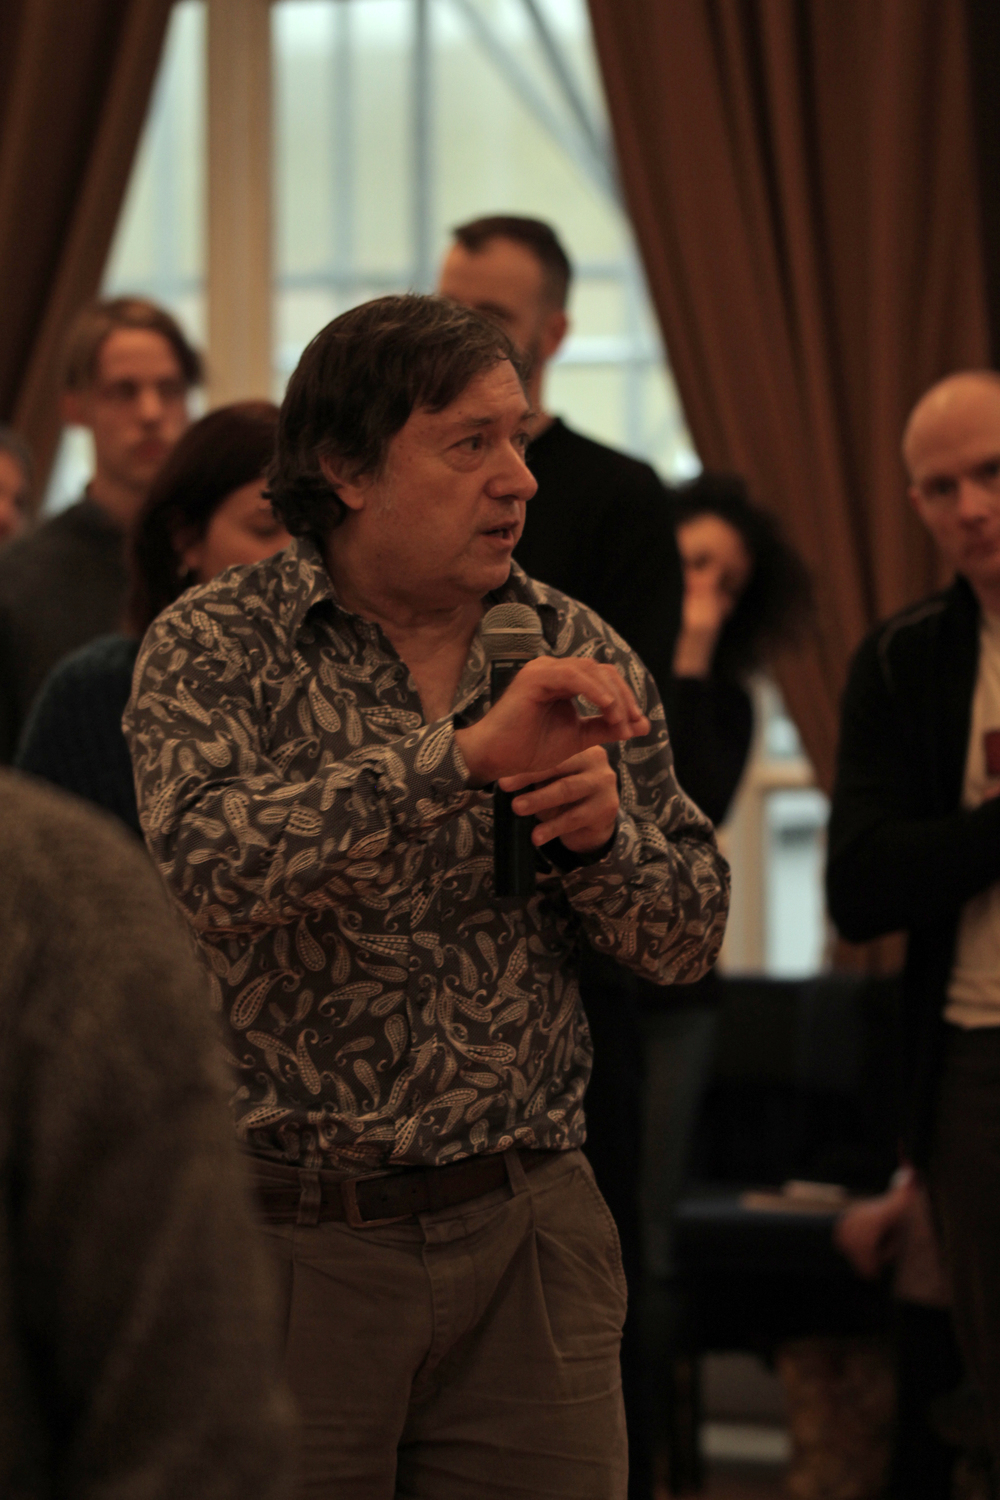 Peter Philippson leading the afternoon session. Image courtesy of the British Gestalt Journal.